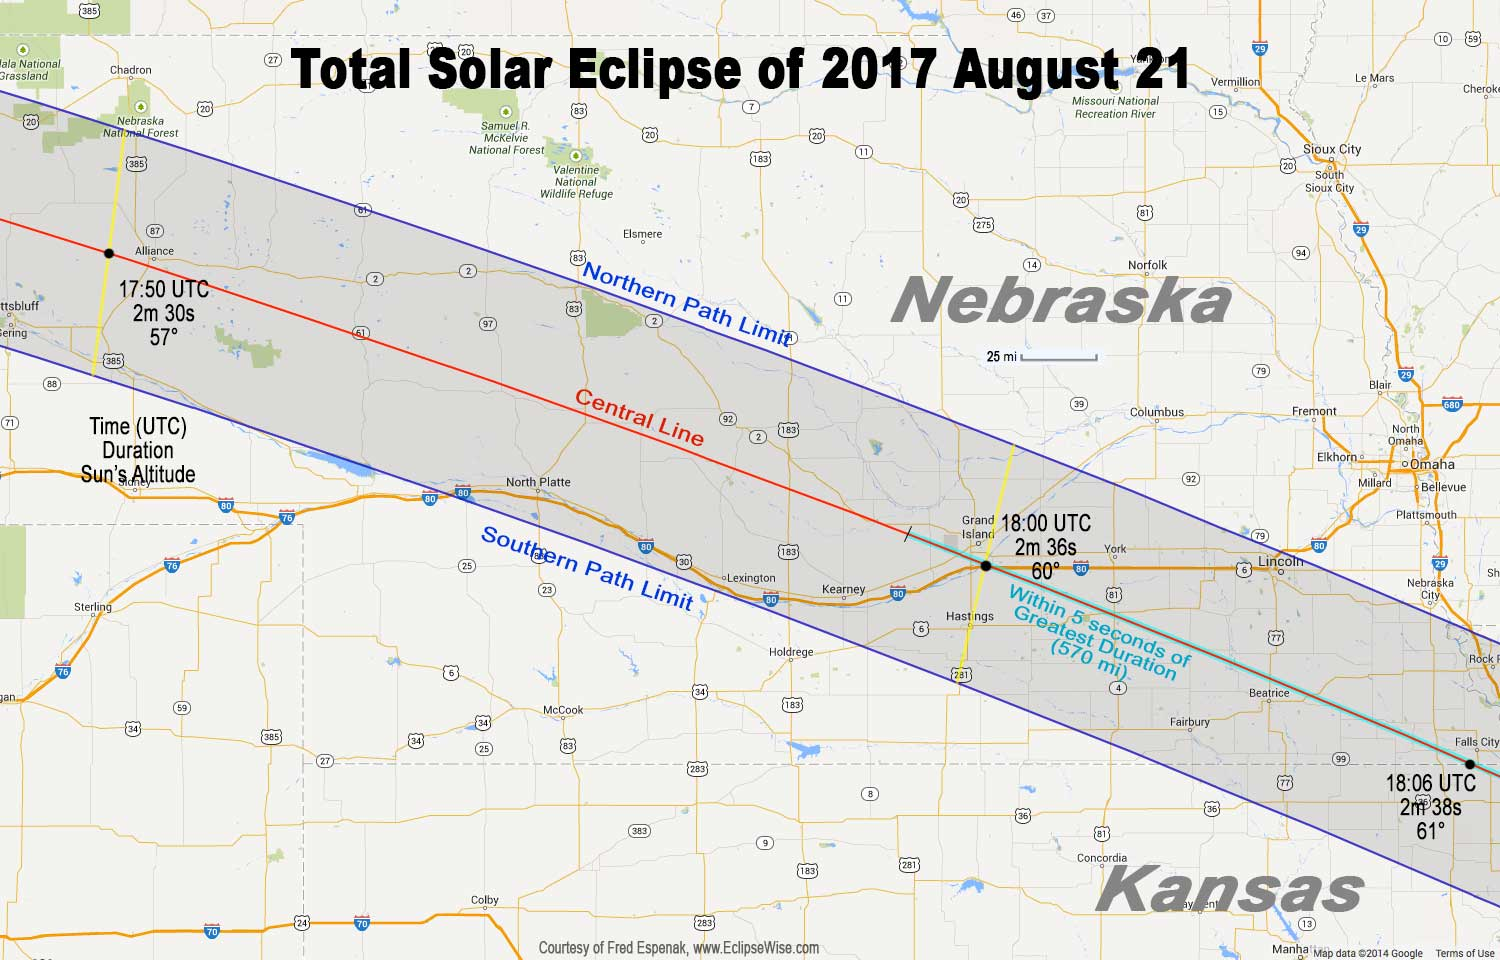 Total Eclipse of the Sun: August 21, 2017